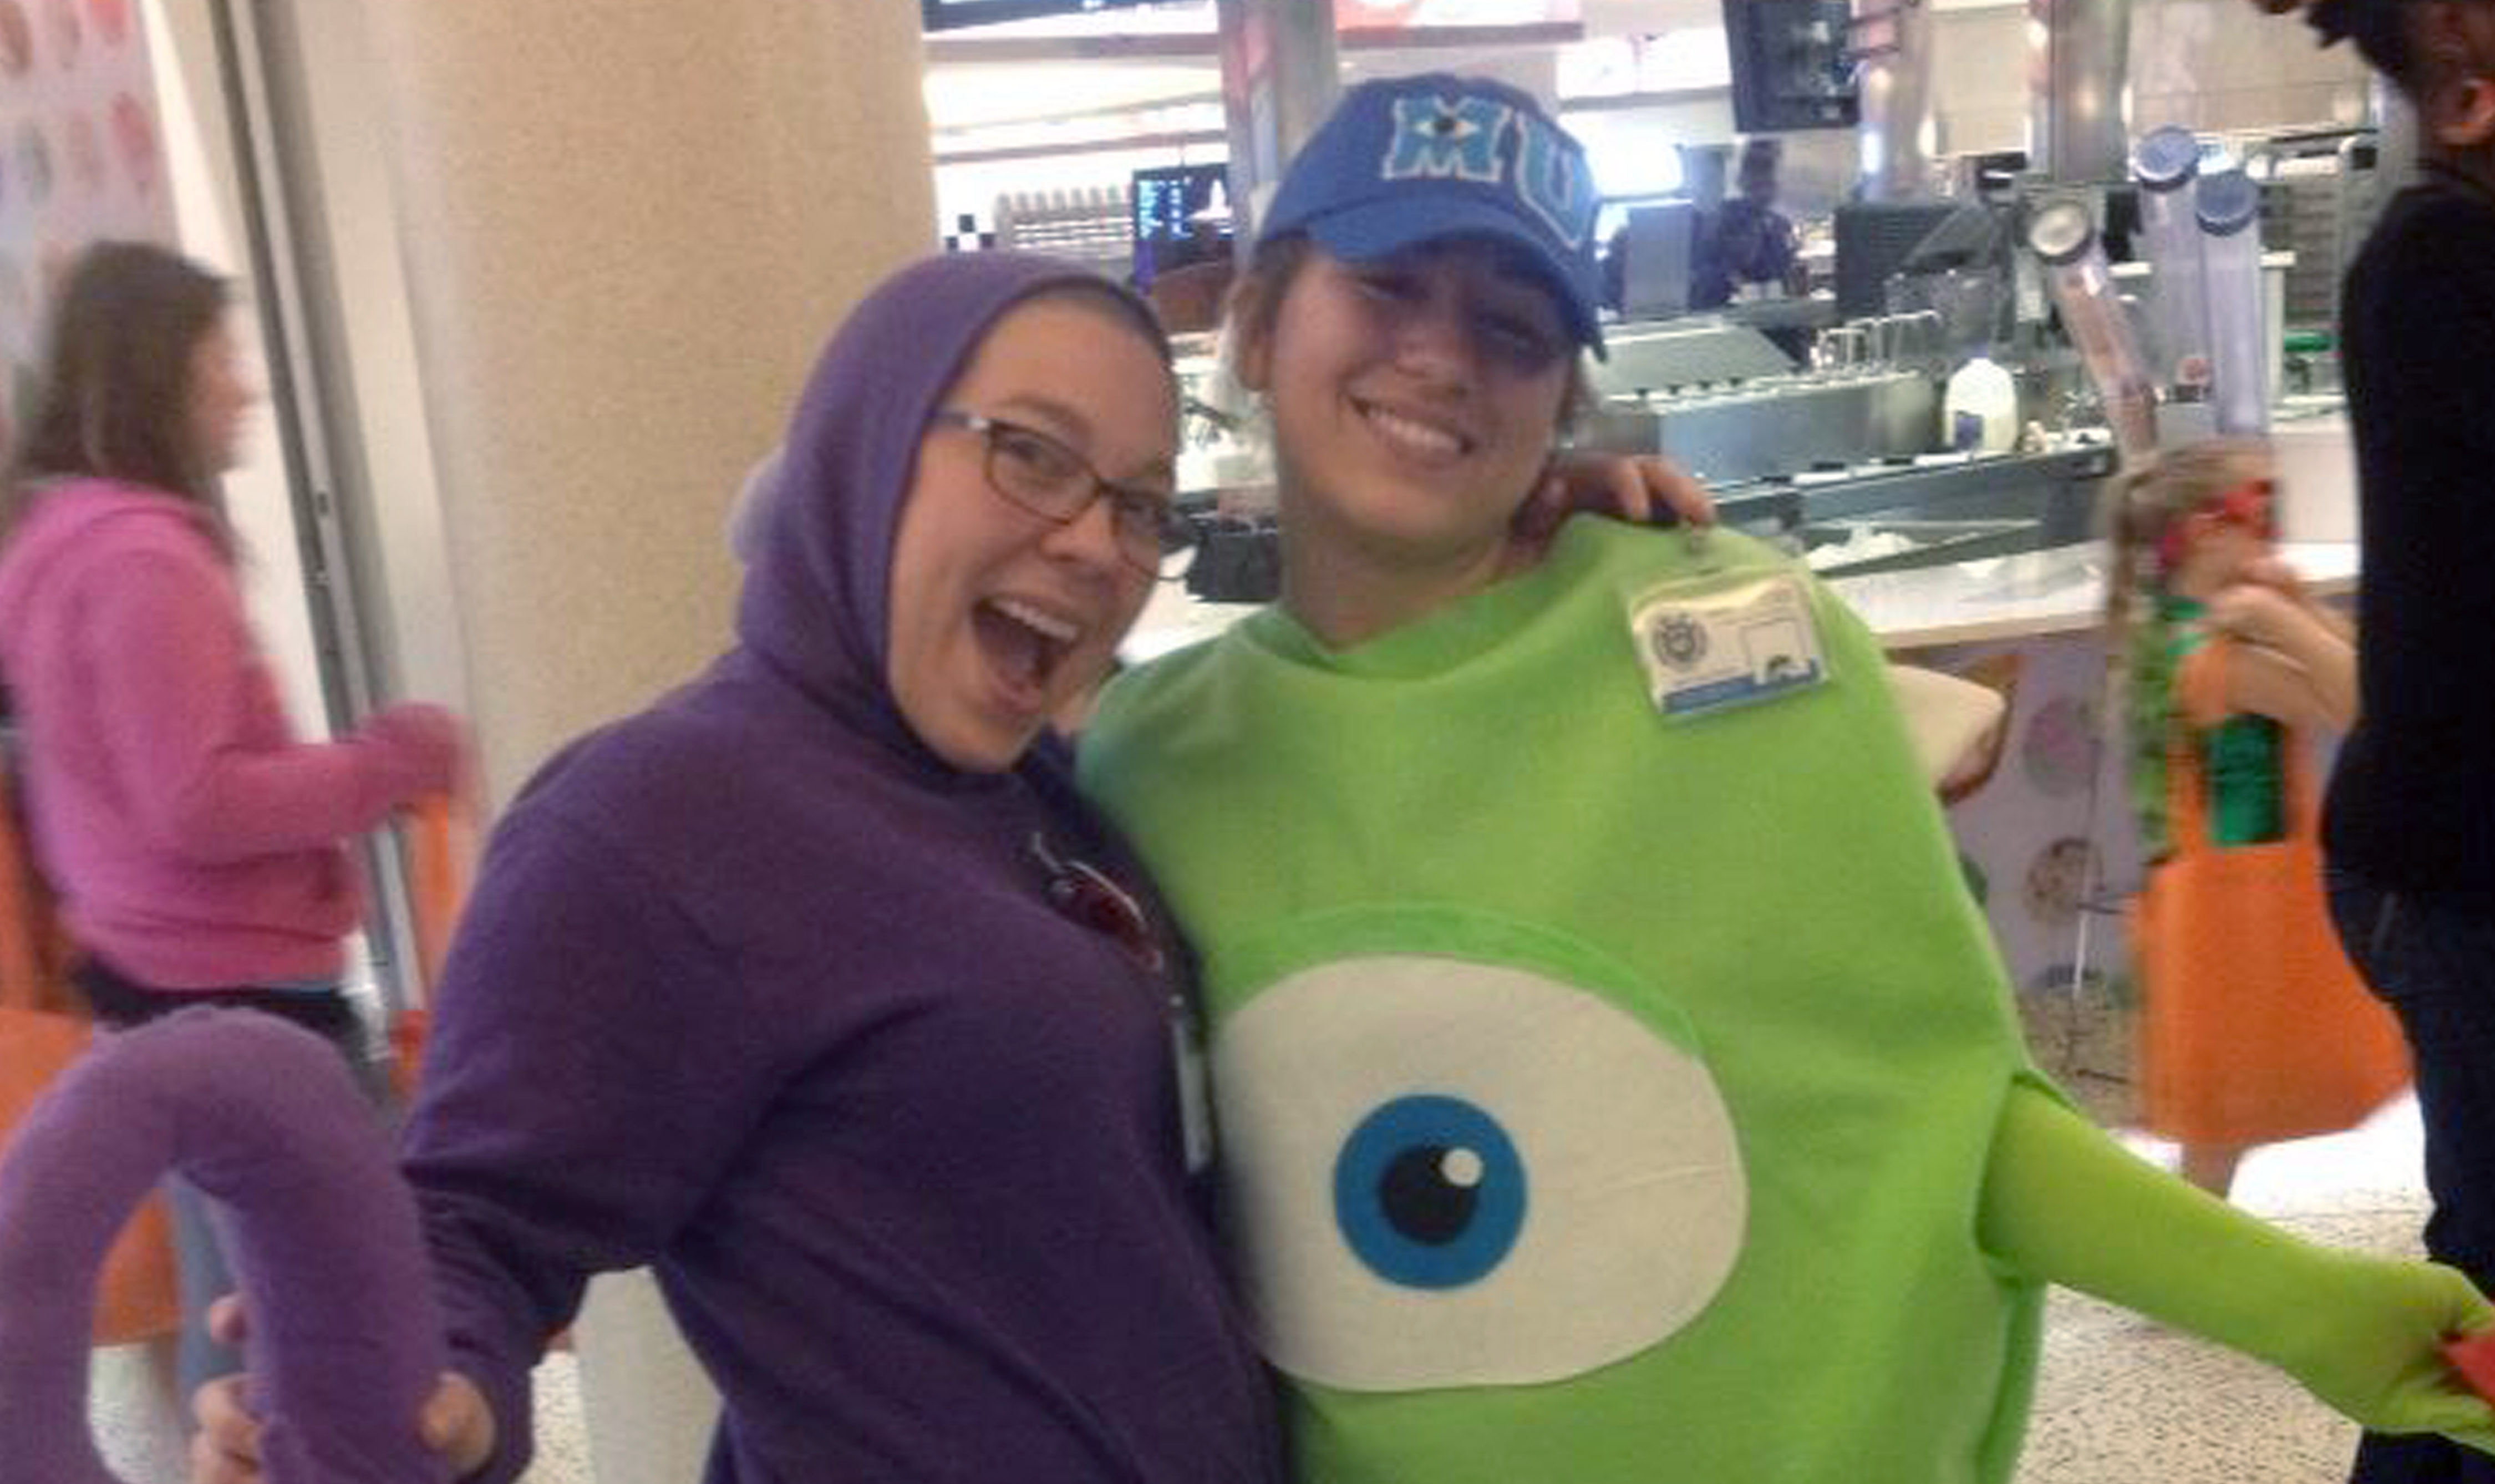 Lidija and coworker dressed as monsters for a Halloween party